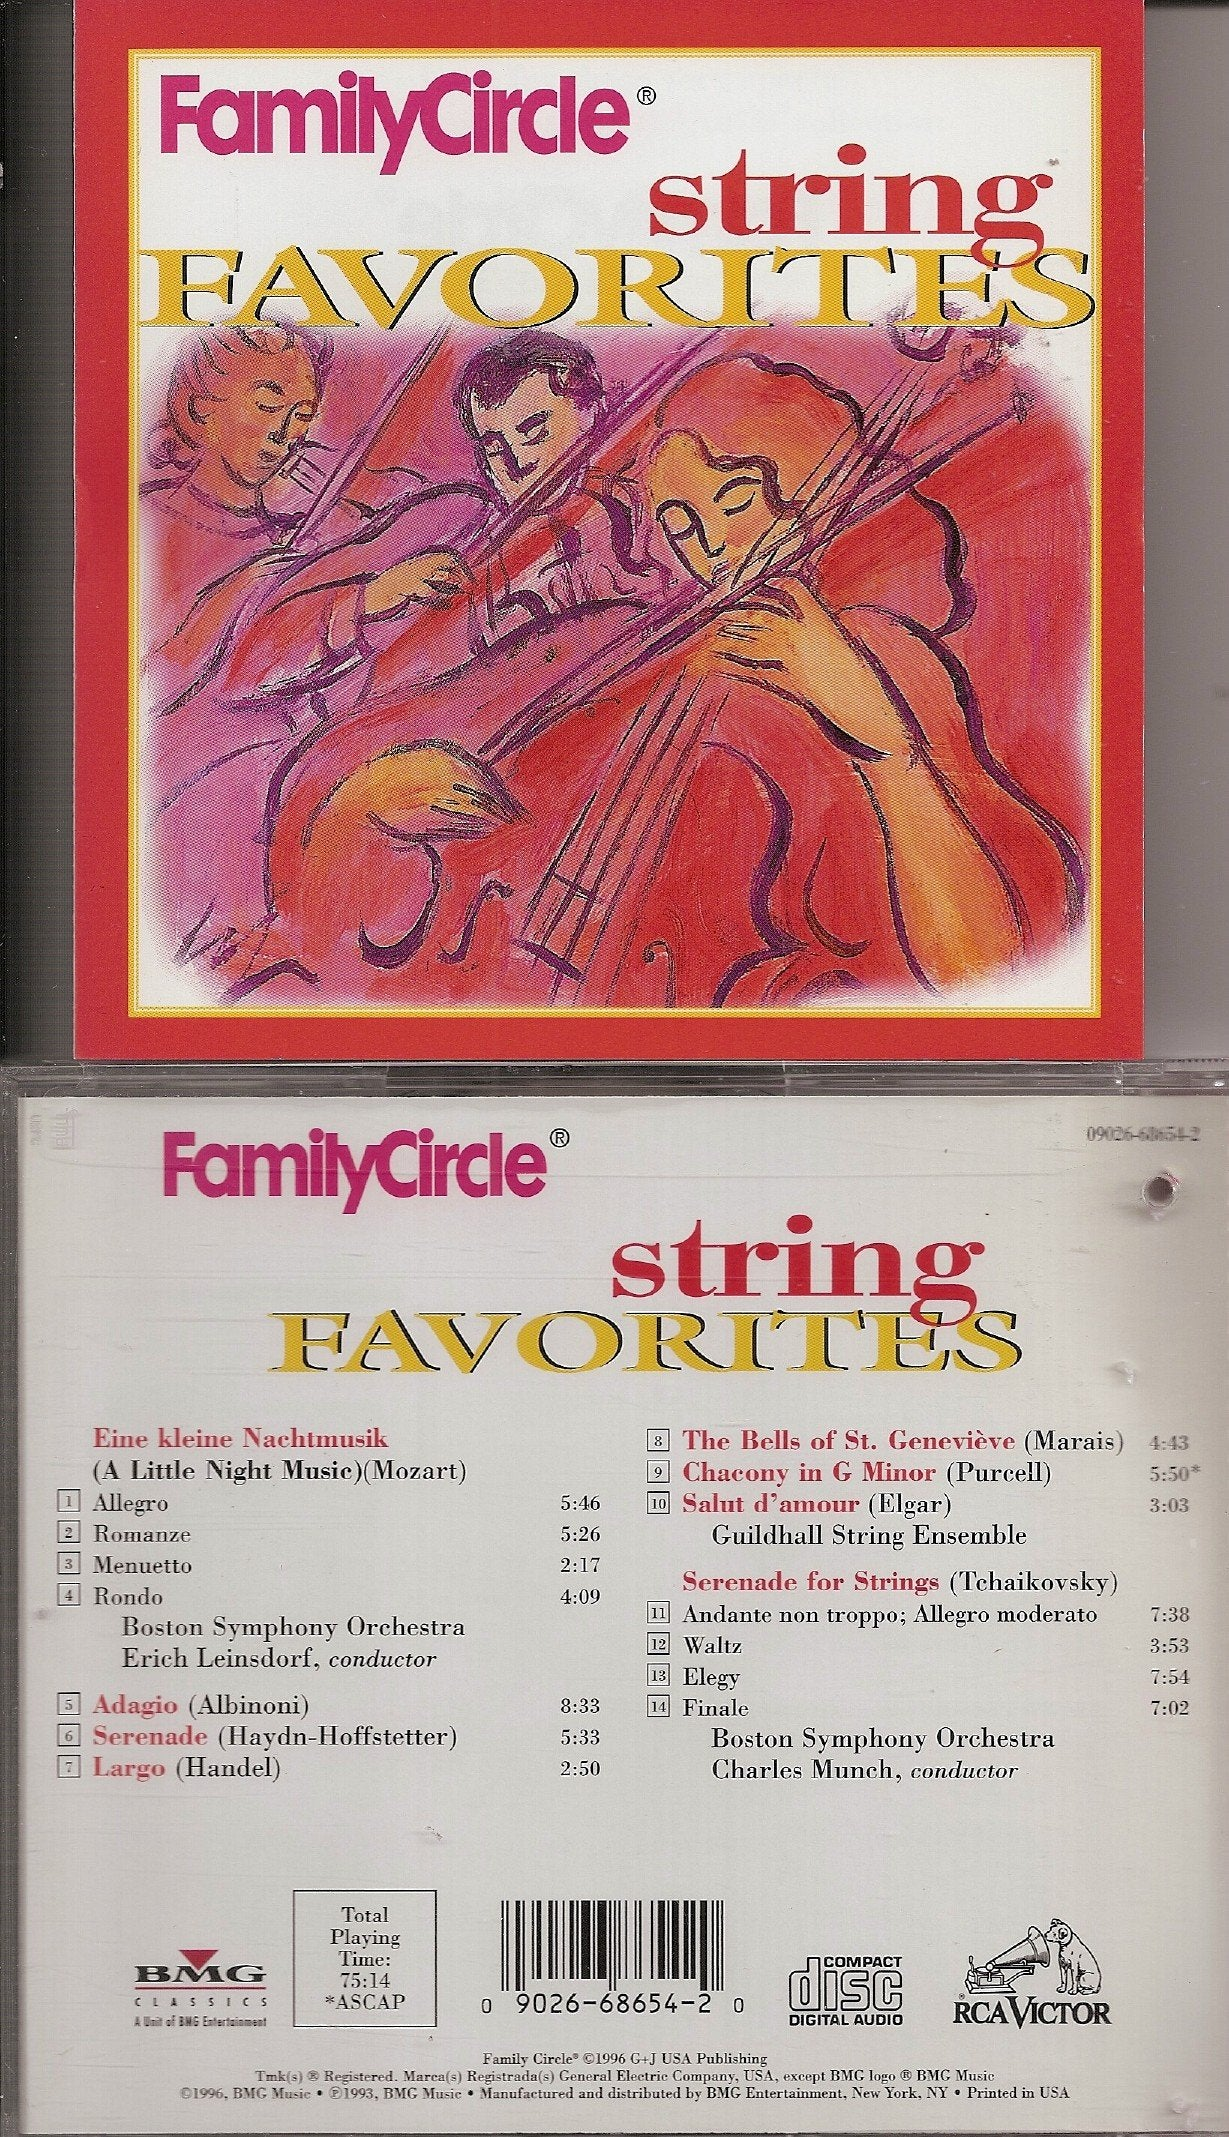 String Favorites [Audio CD] Family Circle